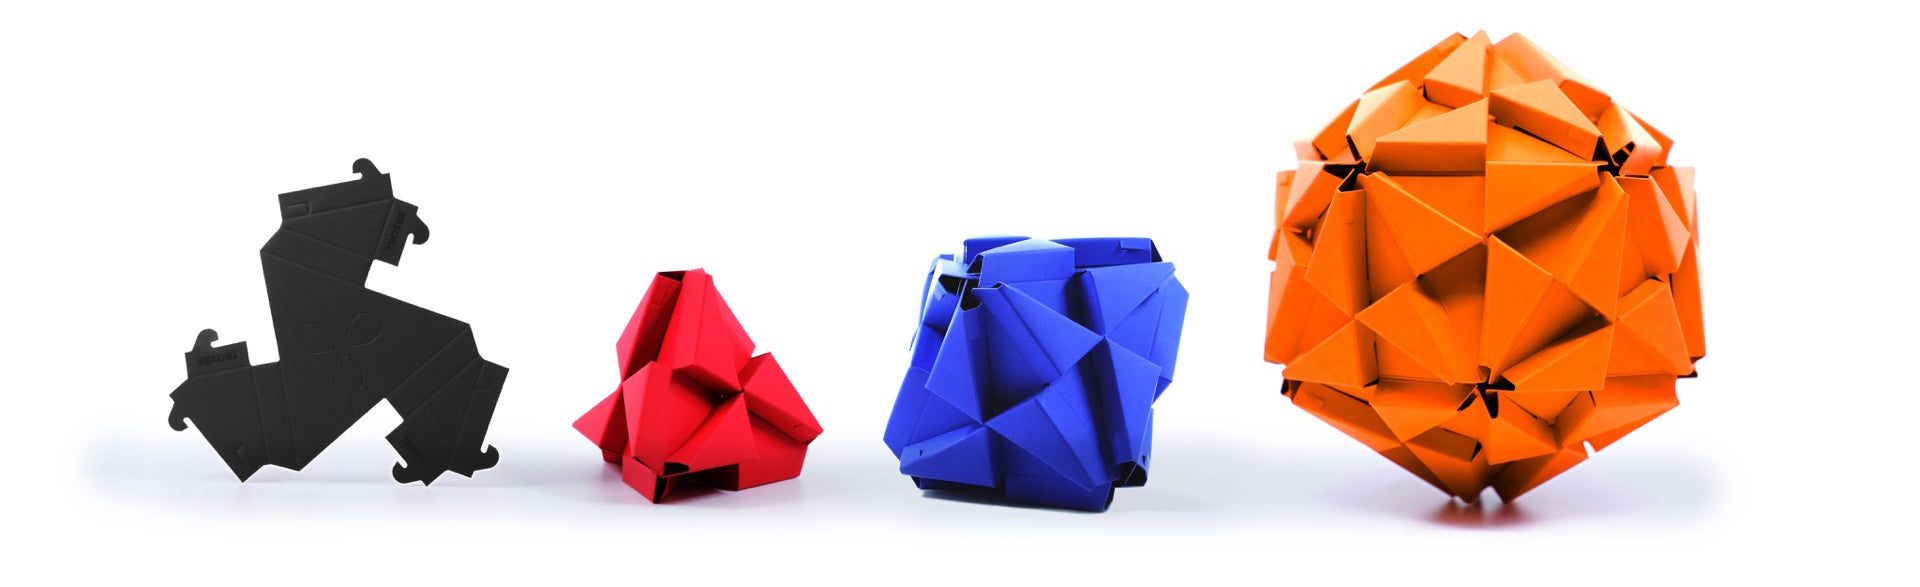 Troxes platonic solids